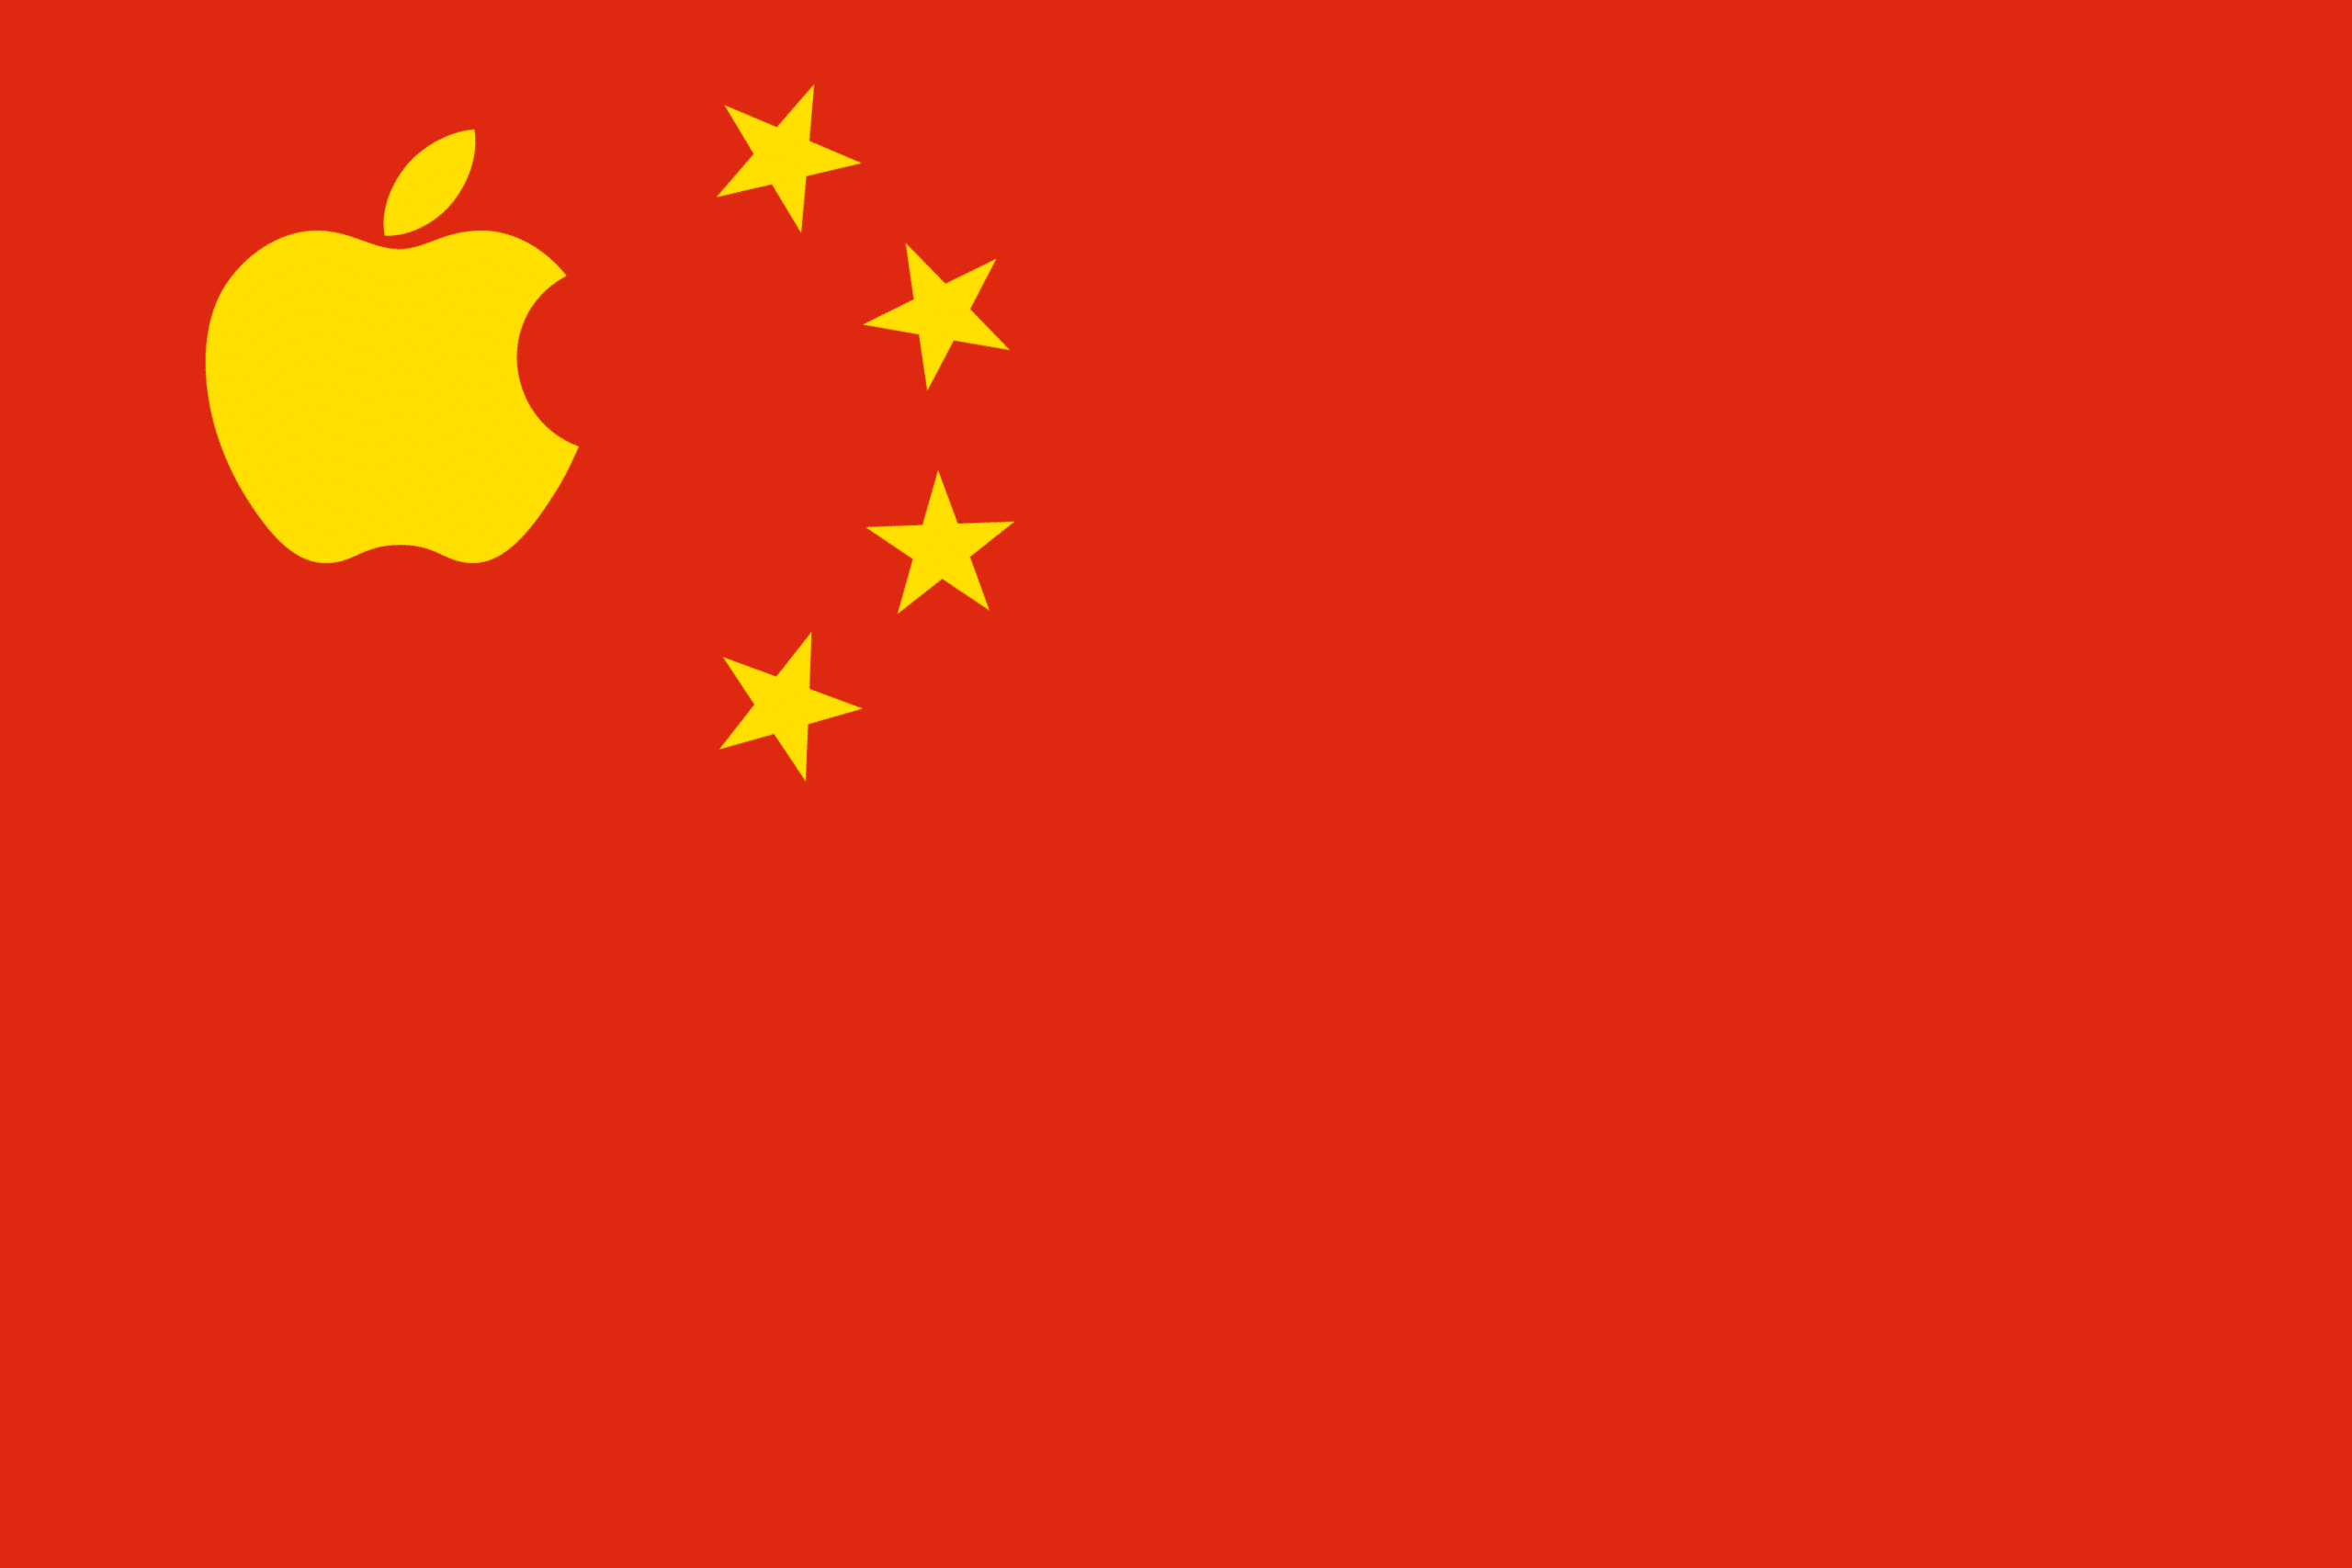 Bandeira da China com o logo da Apple